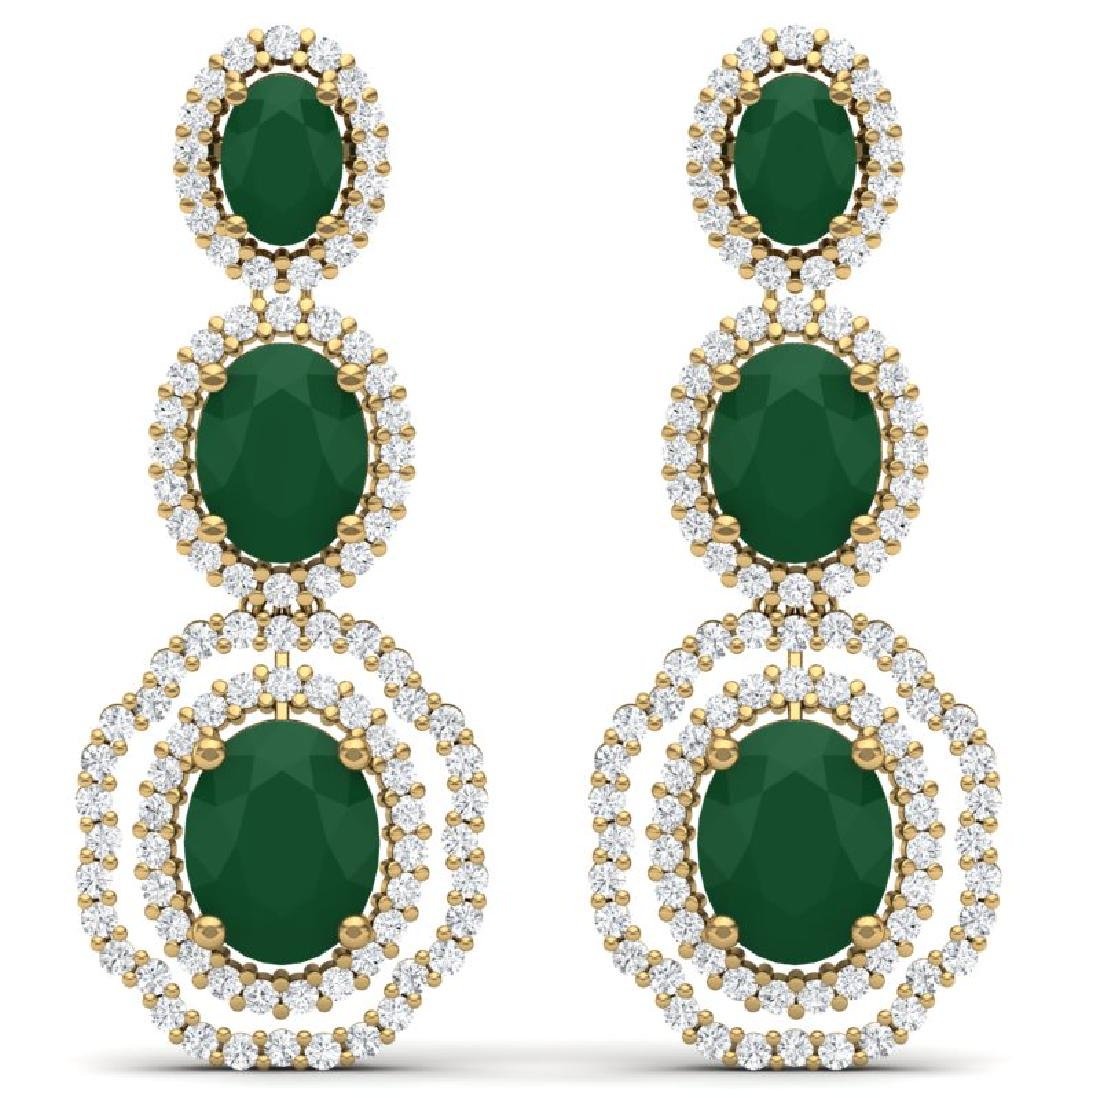 17.01 CTW Royalty Emerald & VS Diamond Earrings 18K